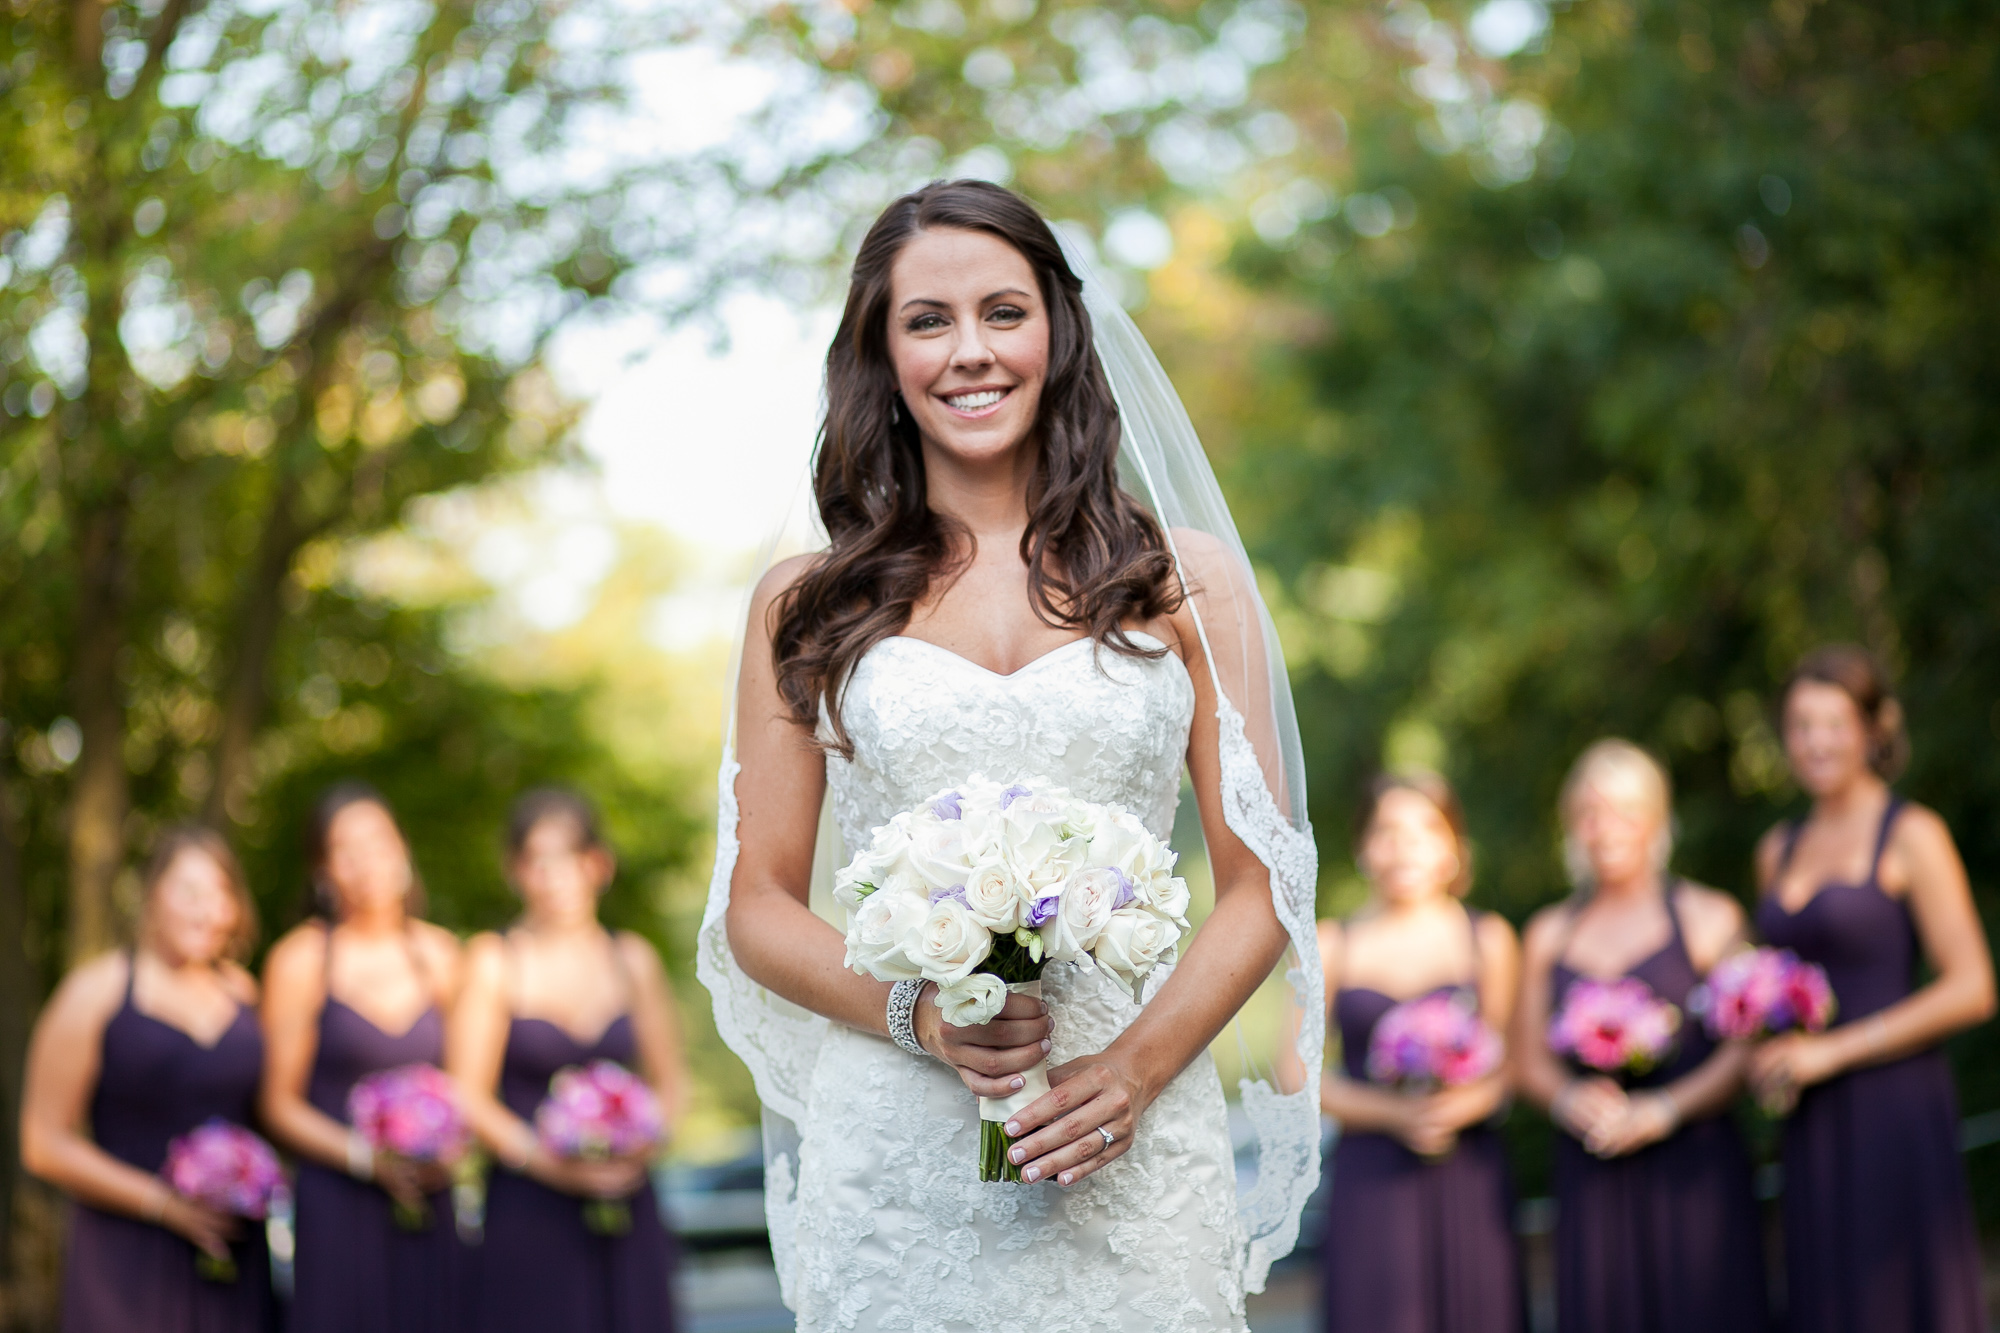 Classic Wedding Photography in Central NJ - Jenna Perfette Photography